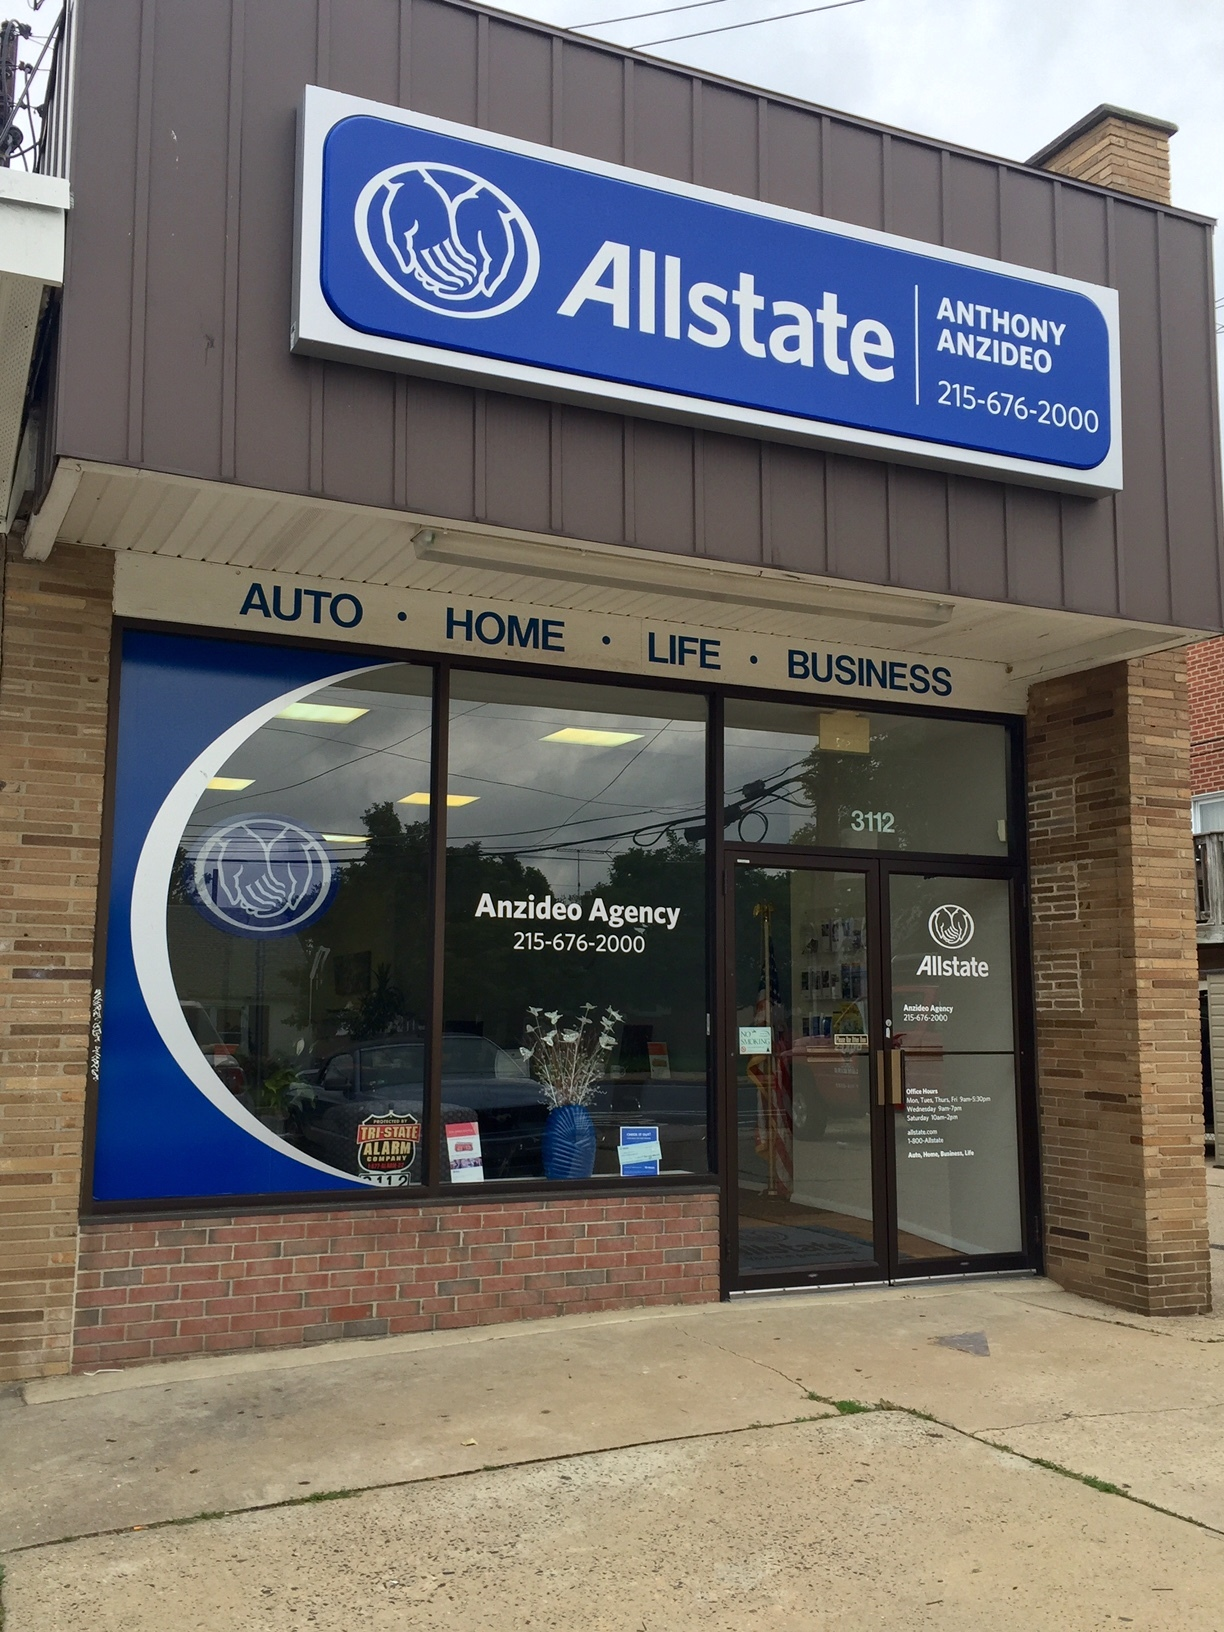 Allstate Insurance Agent: Anthony Anzideo image 2